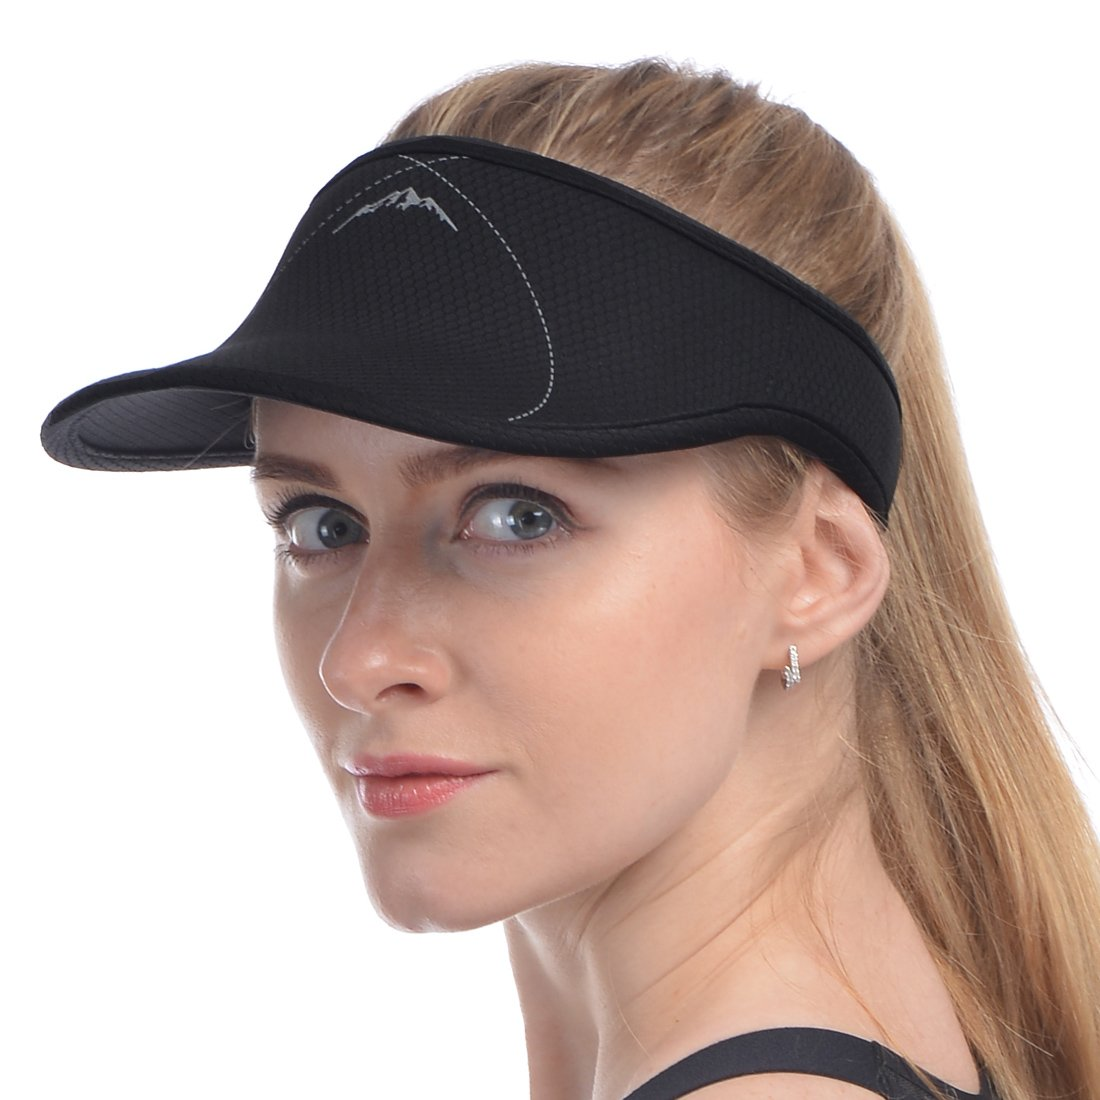 UShake Sports Visor for Man or Woman in Golf Running Jogging with Black/White/Rose Red Colors (Black) by UShake